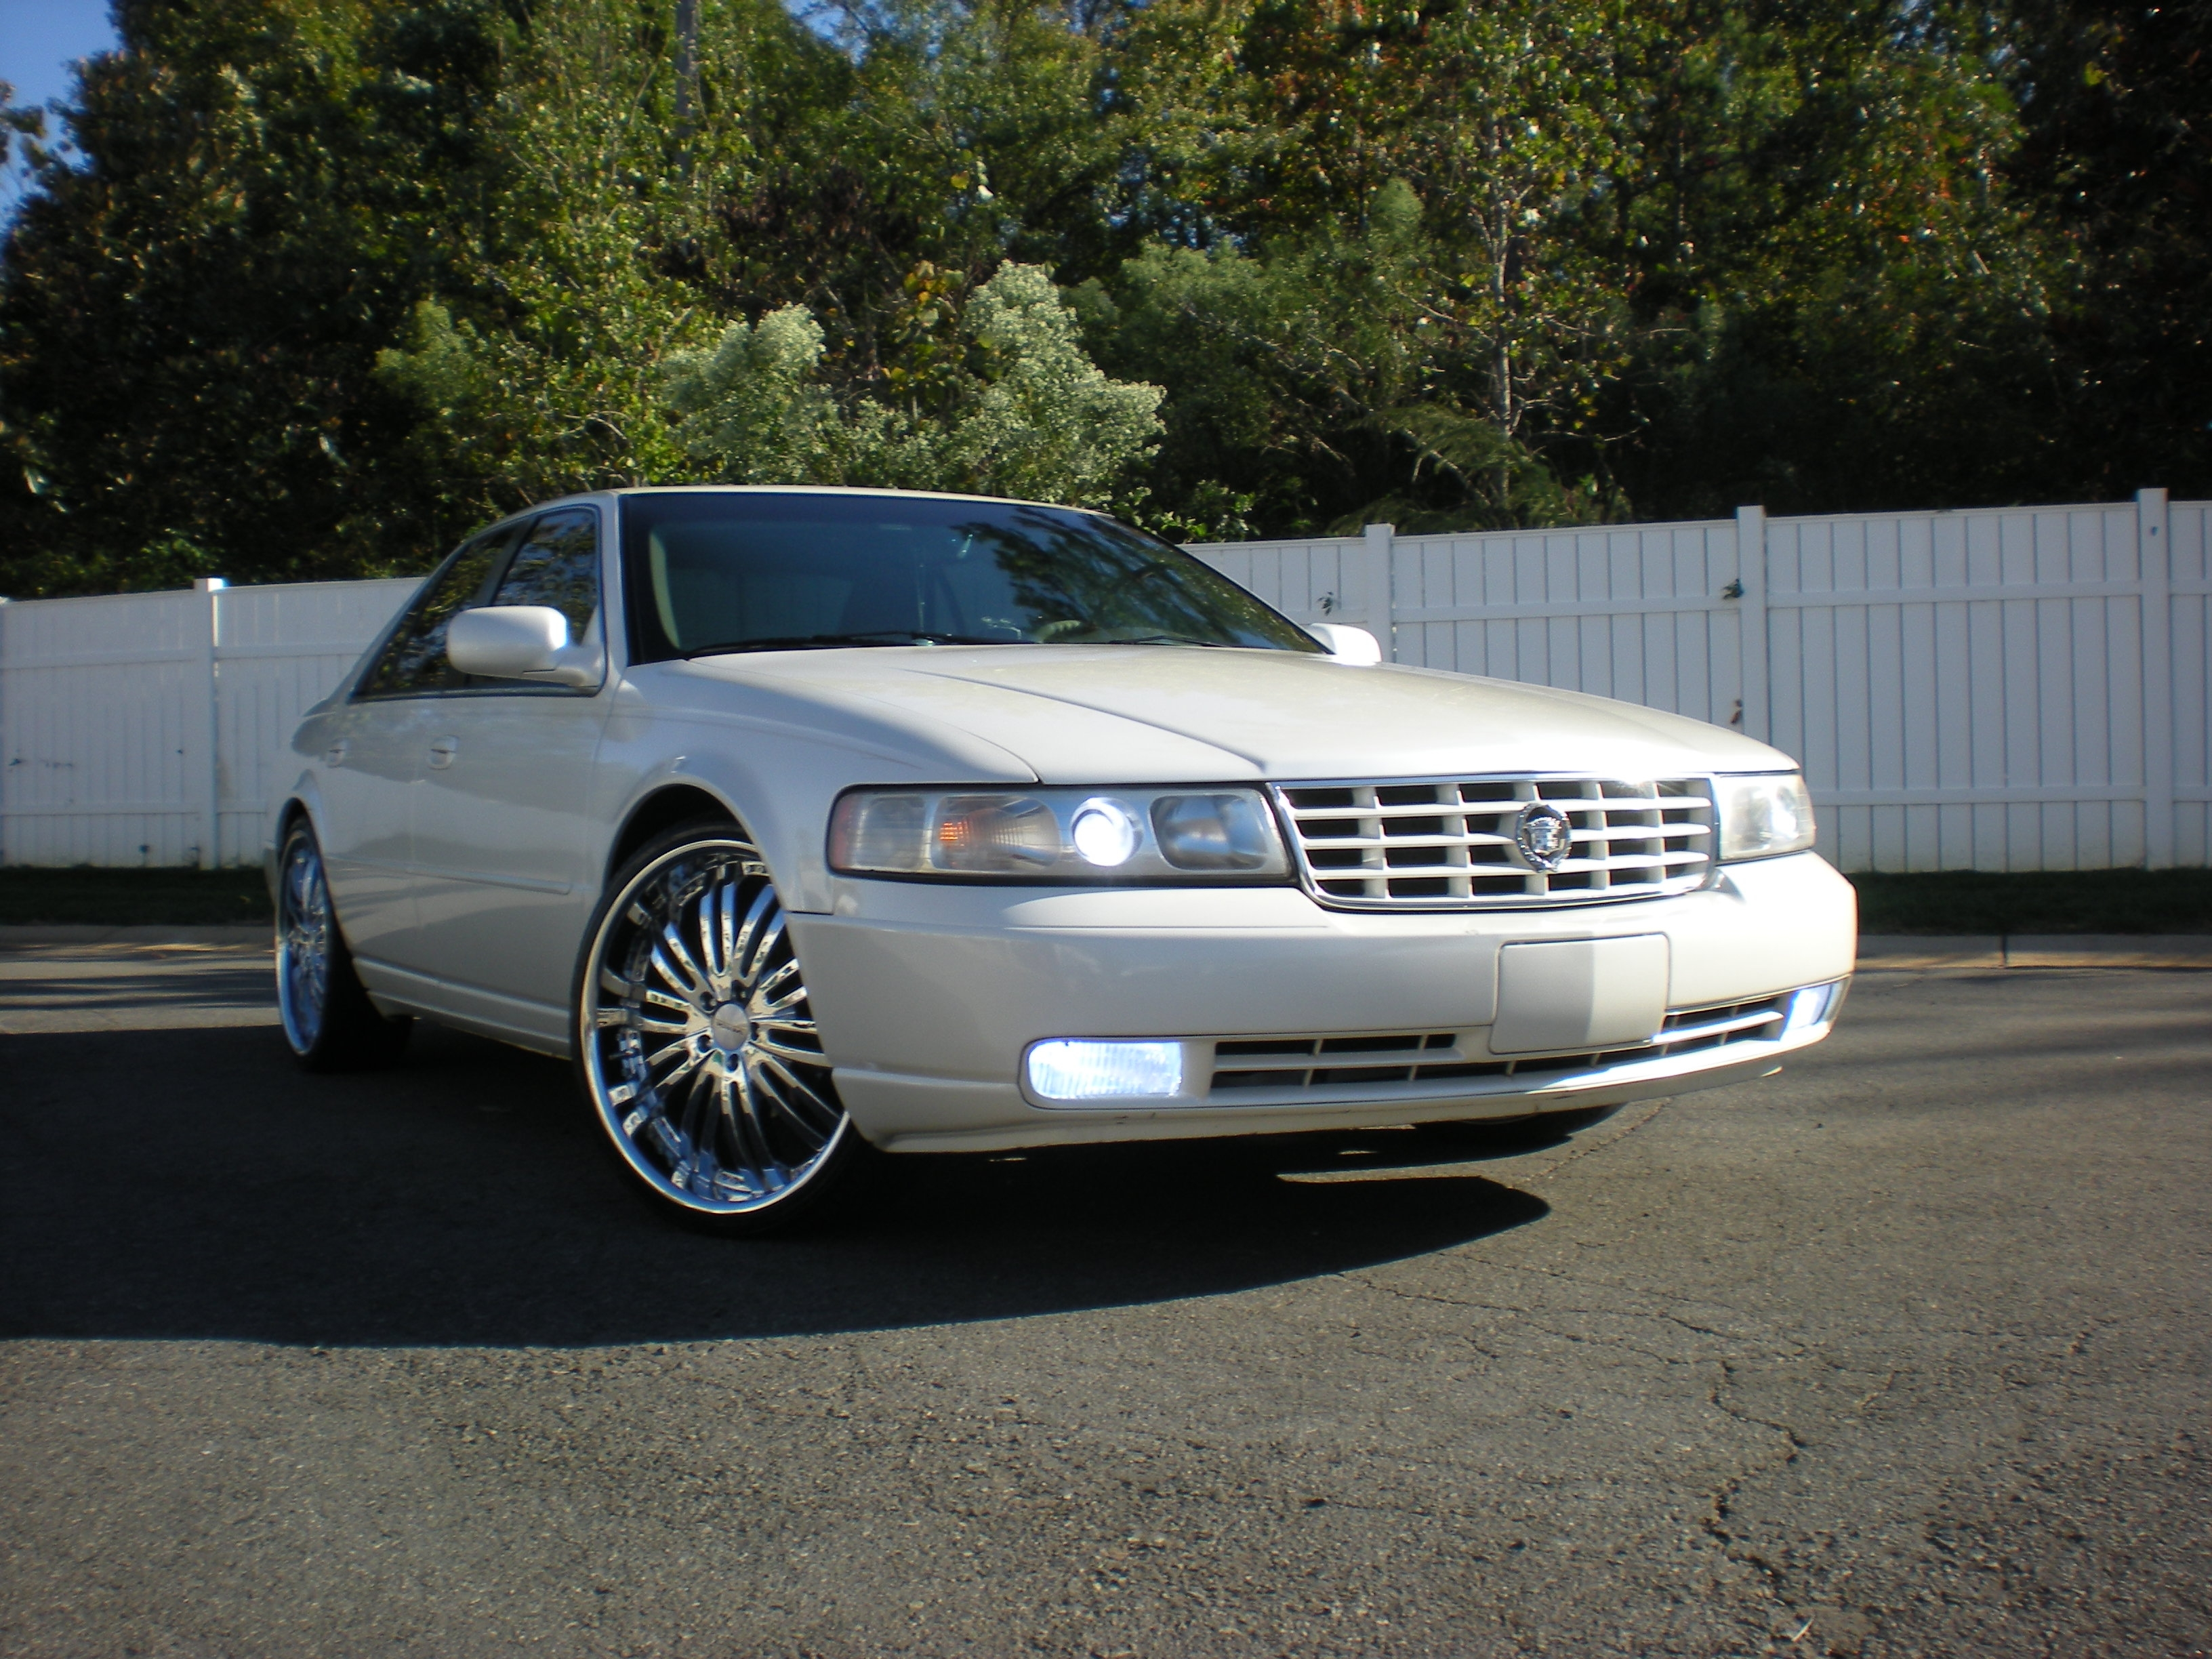 The_bachelor 2001 Cadillac STS